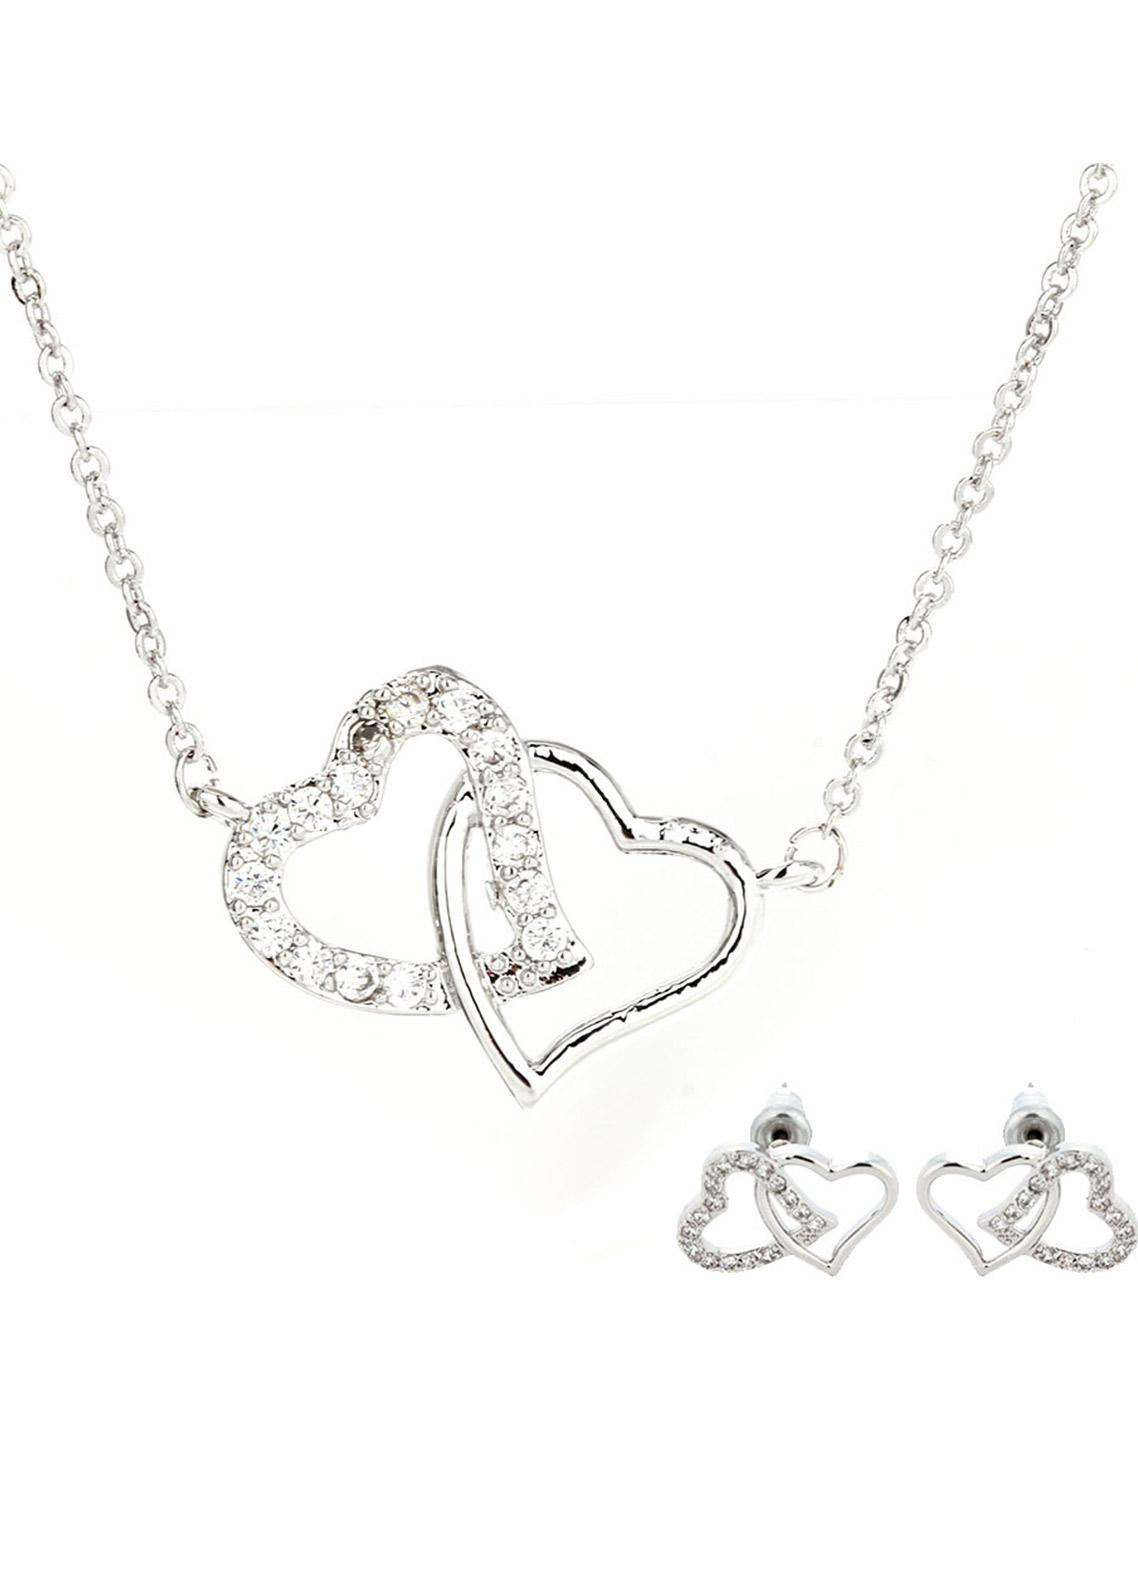 Anna Grace London by Silk Avenue Silver Intertwined Crystal Hearts Necklace & Earrings Jewelry Set AGNE013 - Ladies Jewellery